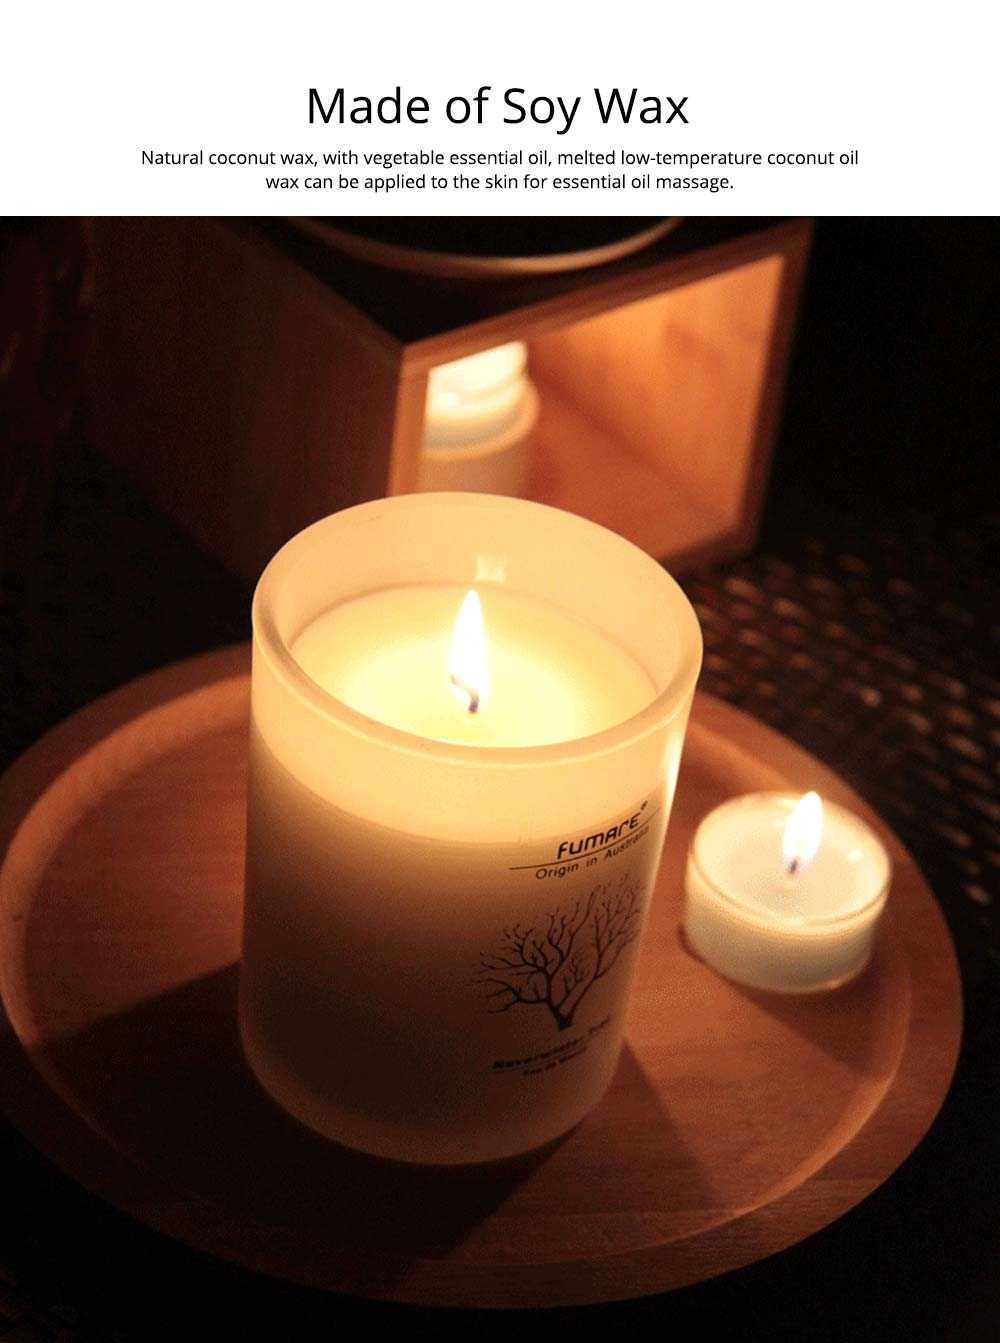 Fragrance Soy Wax Aromatherapy Candle Scented Jar Candles for Stress Relief & Relaxation 2